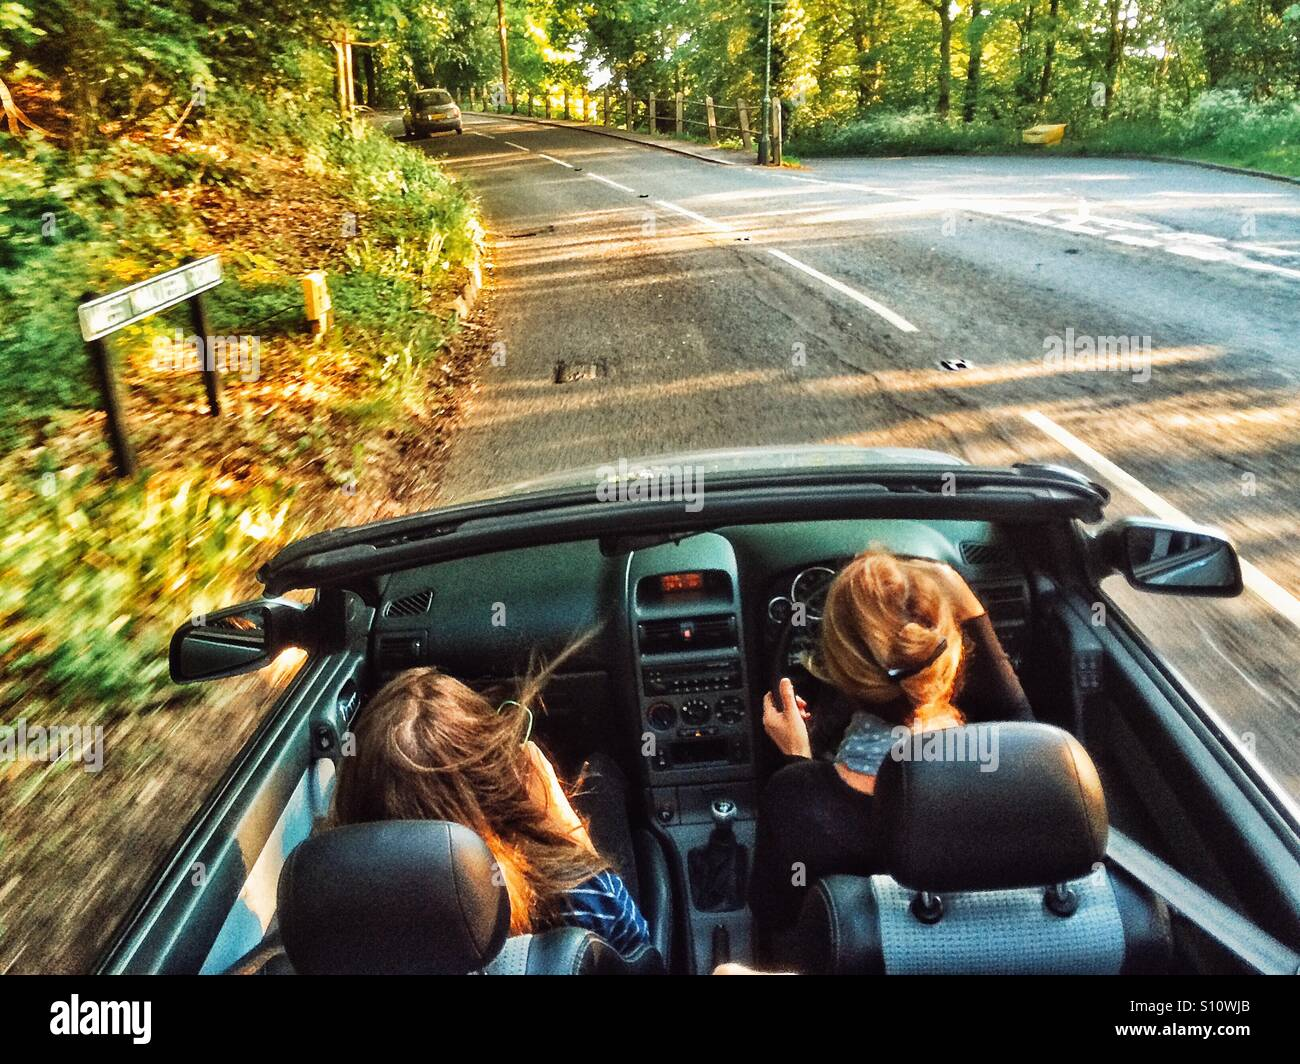 Soft top car along country road - Stock Image